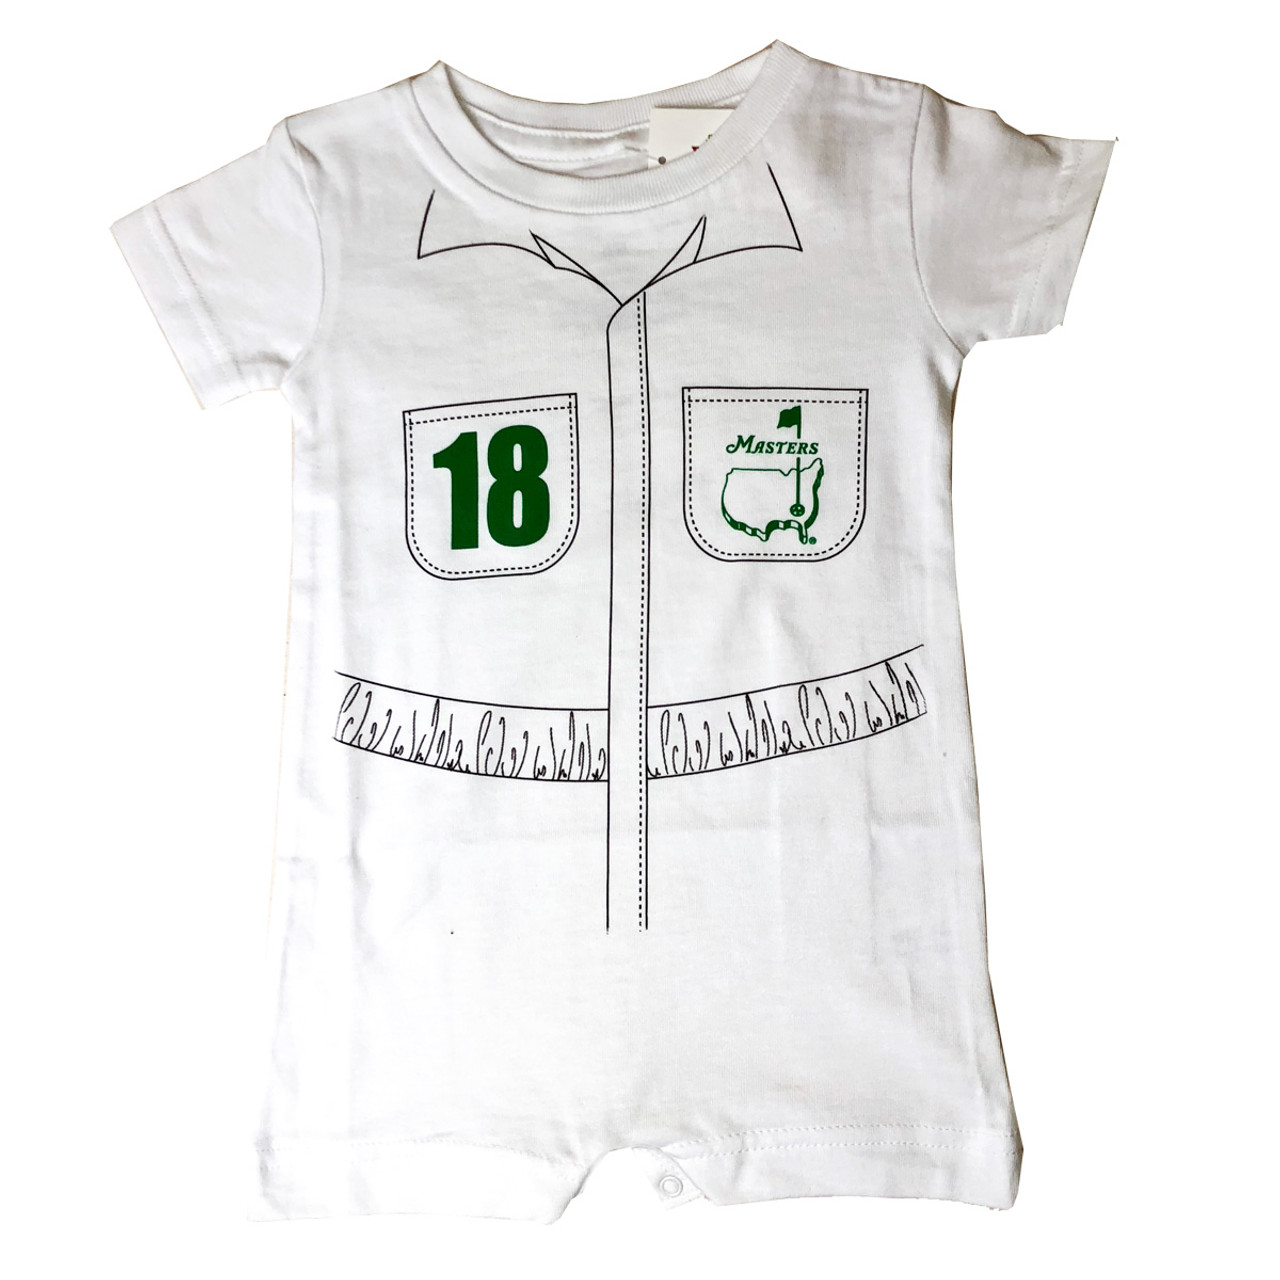 1e6439a75801b Masters Baby Caddy Onesie - White